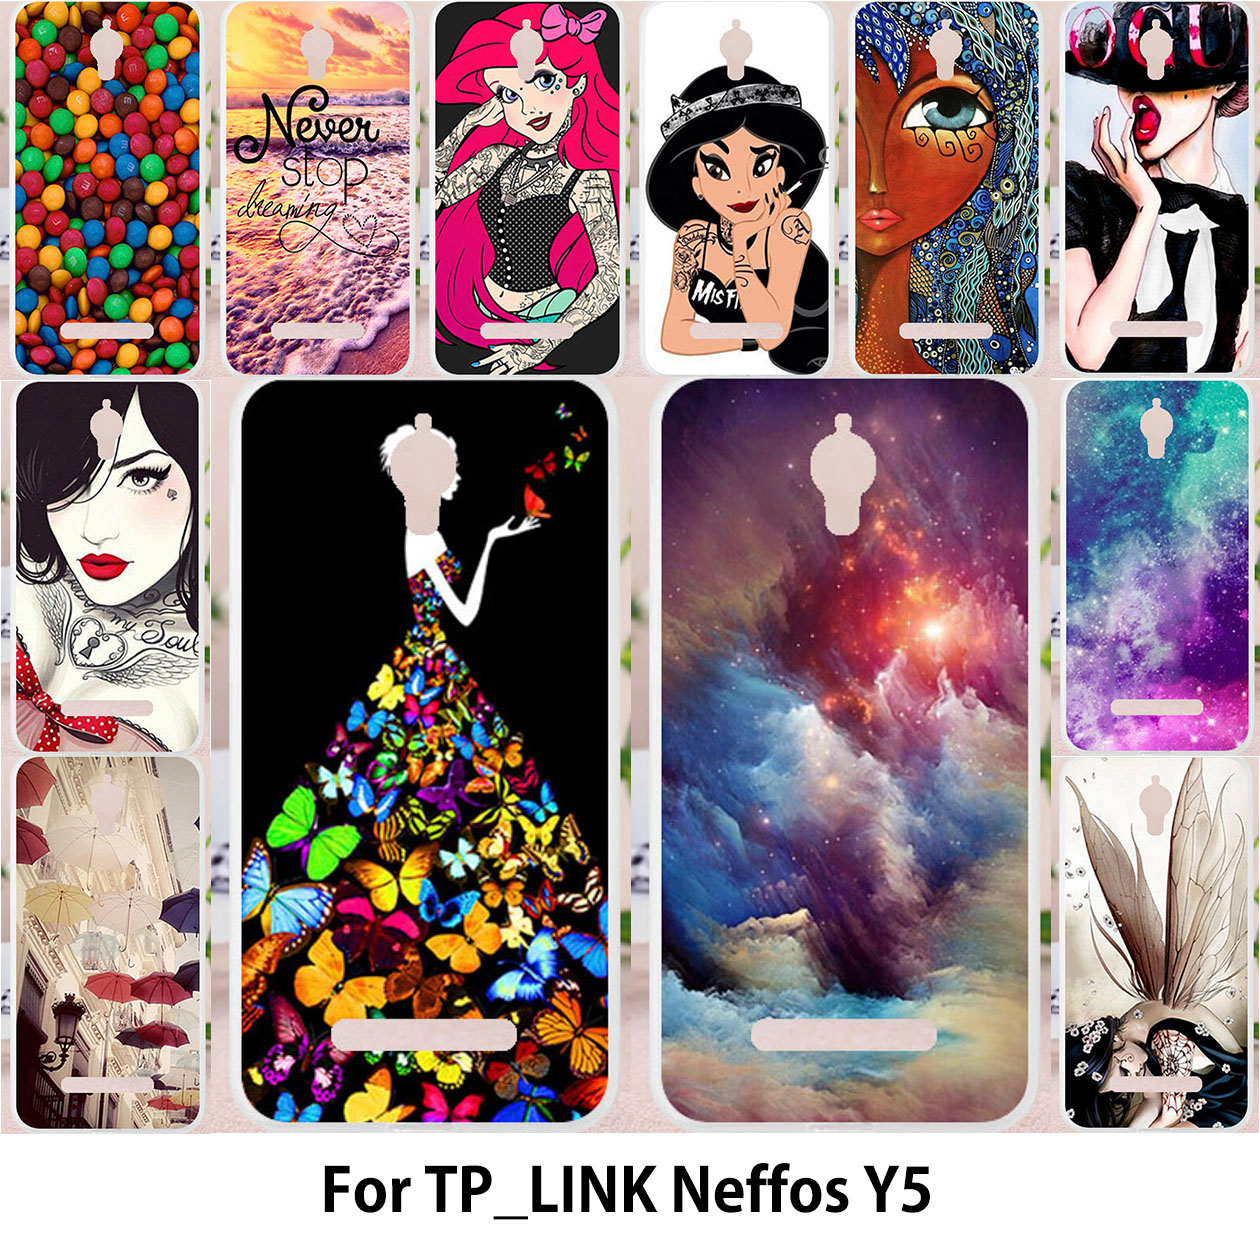 TAOYUNXI For TP-LINK Neffos Y5 TP802A cases Silicone Case For TPLINK Neffos Y5 tp link P ...